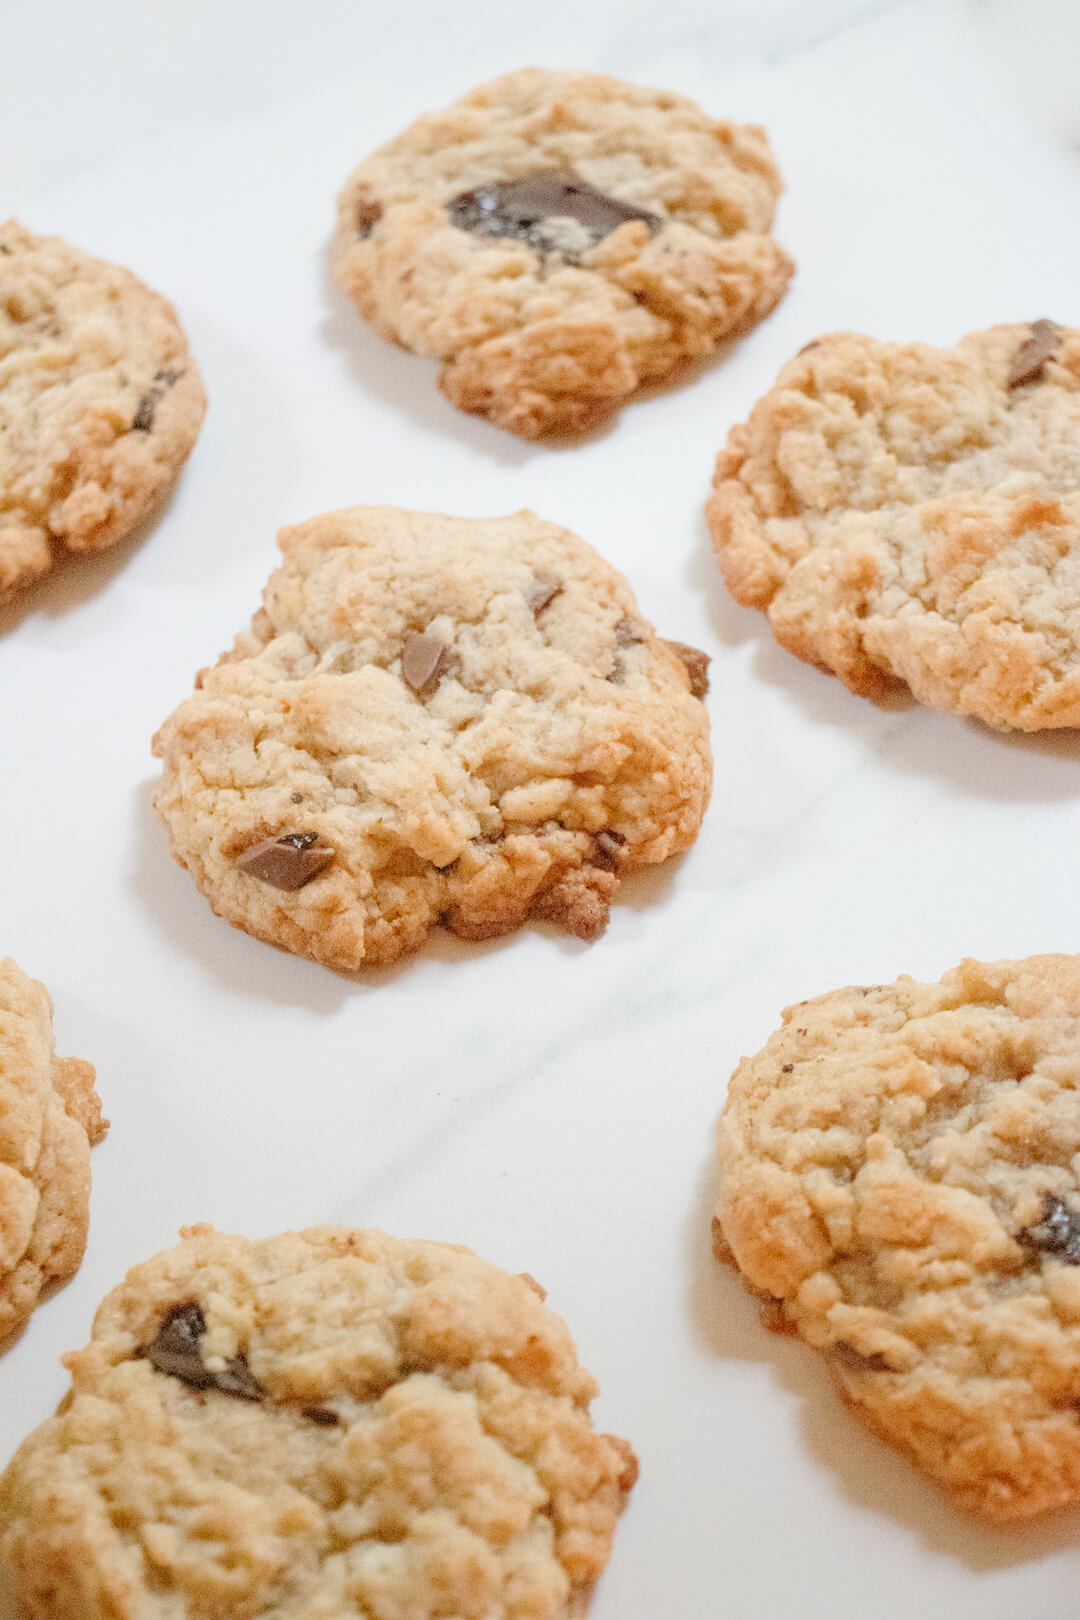 Bakery Style Chocolate Chip Cookies Recipe